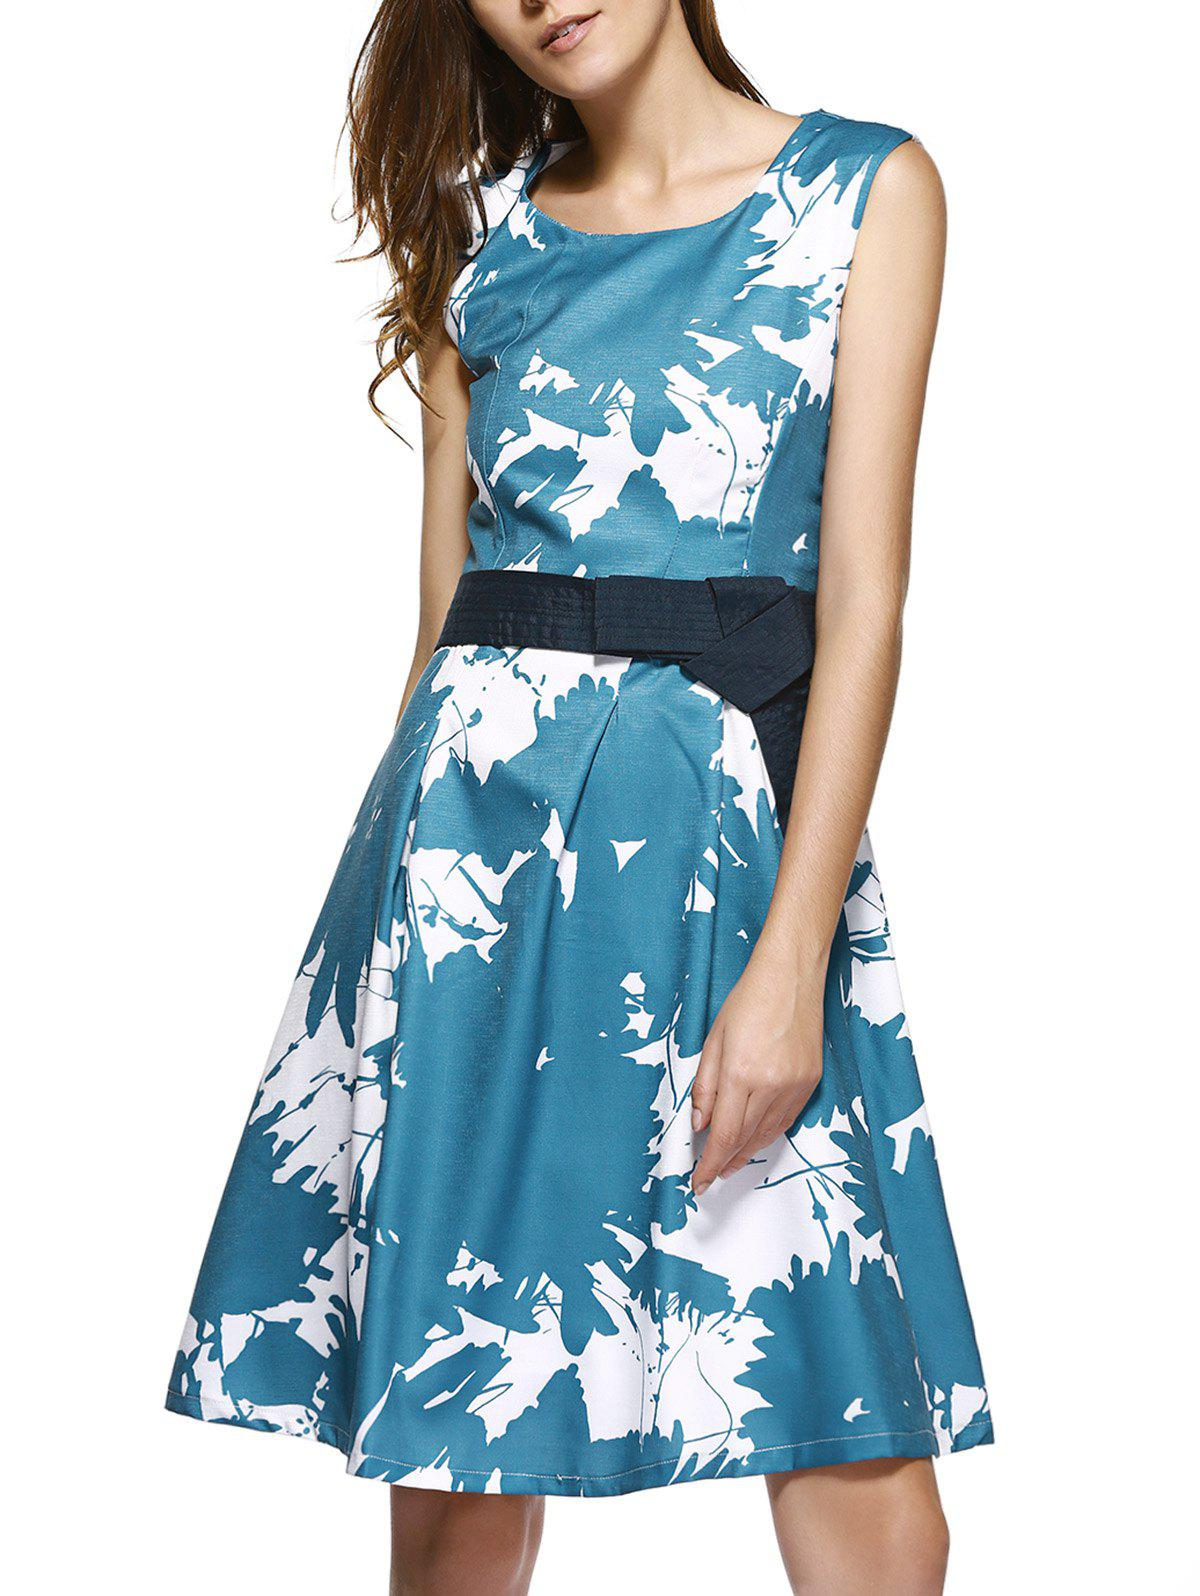 Elegant Tie Dye Sleeveless Fitting Skater Dress For Women